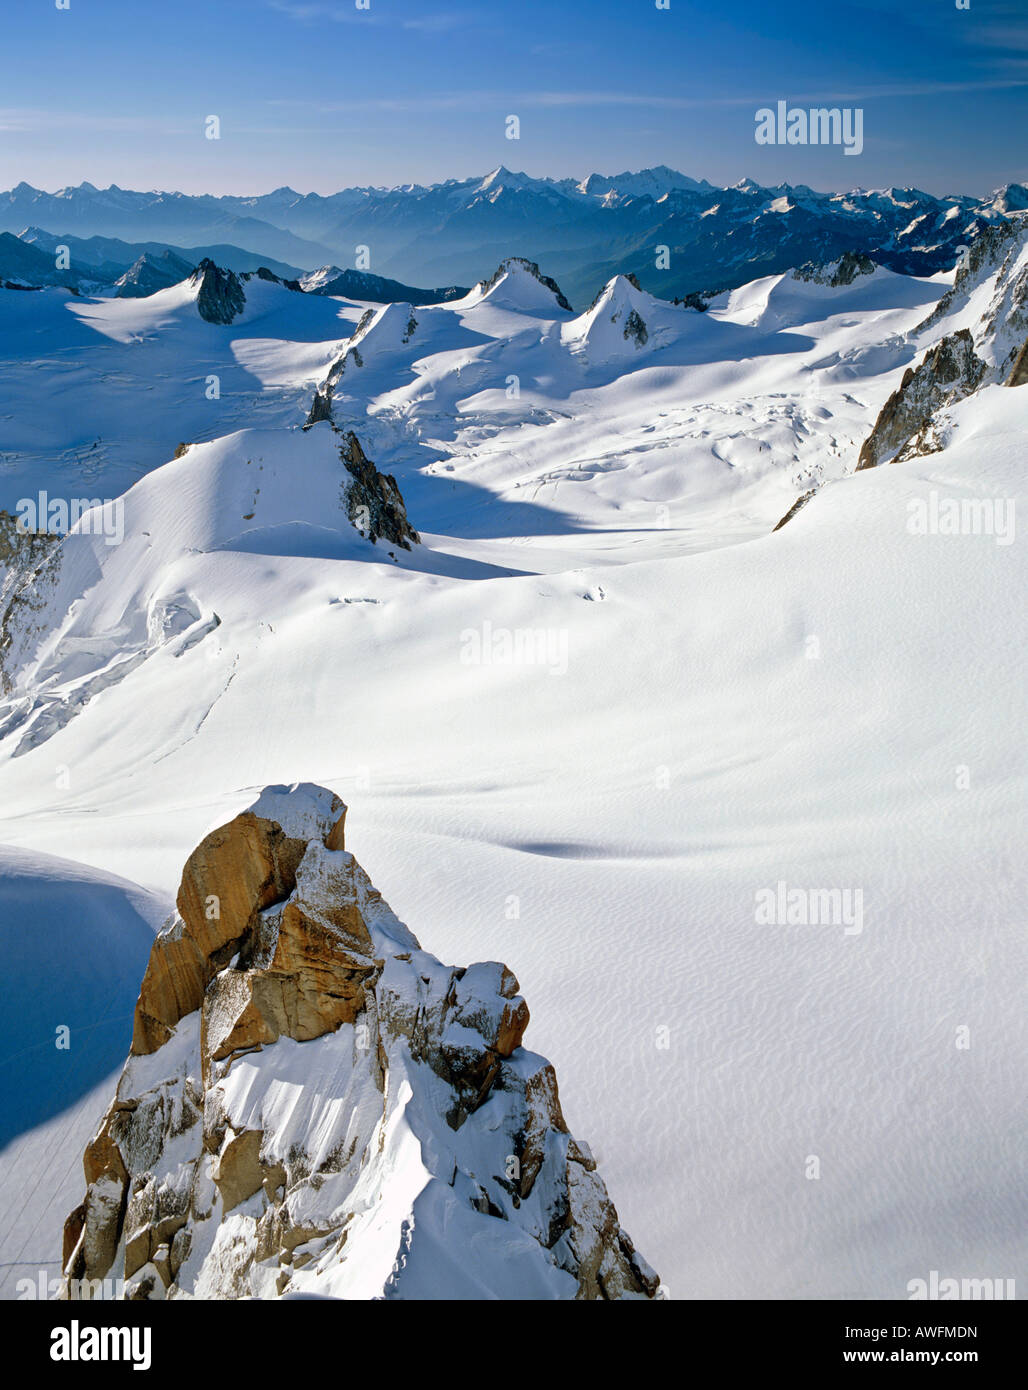 Vallee Blanche viewed from Mt. Aiguille du Midi, Savoy Alps, France, Europe Stock Photo